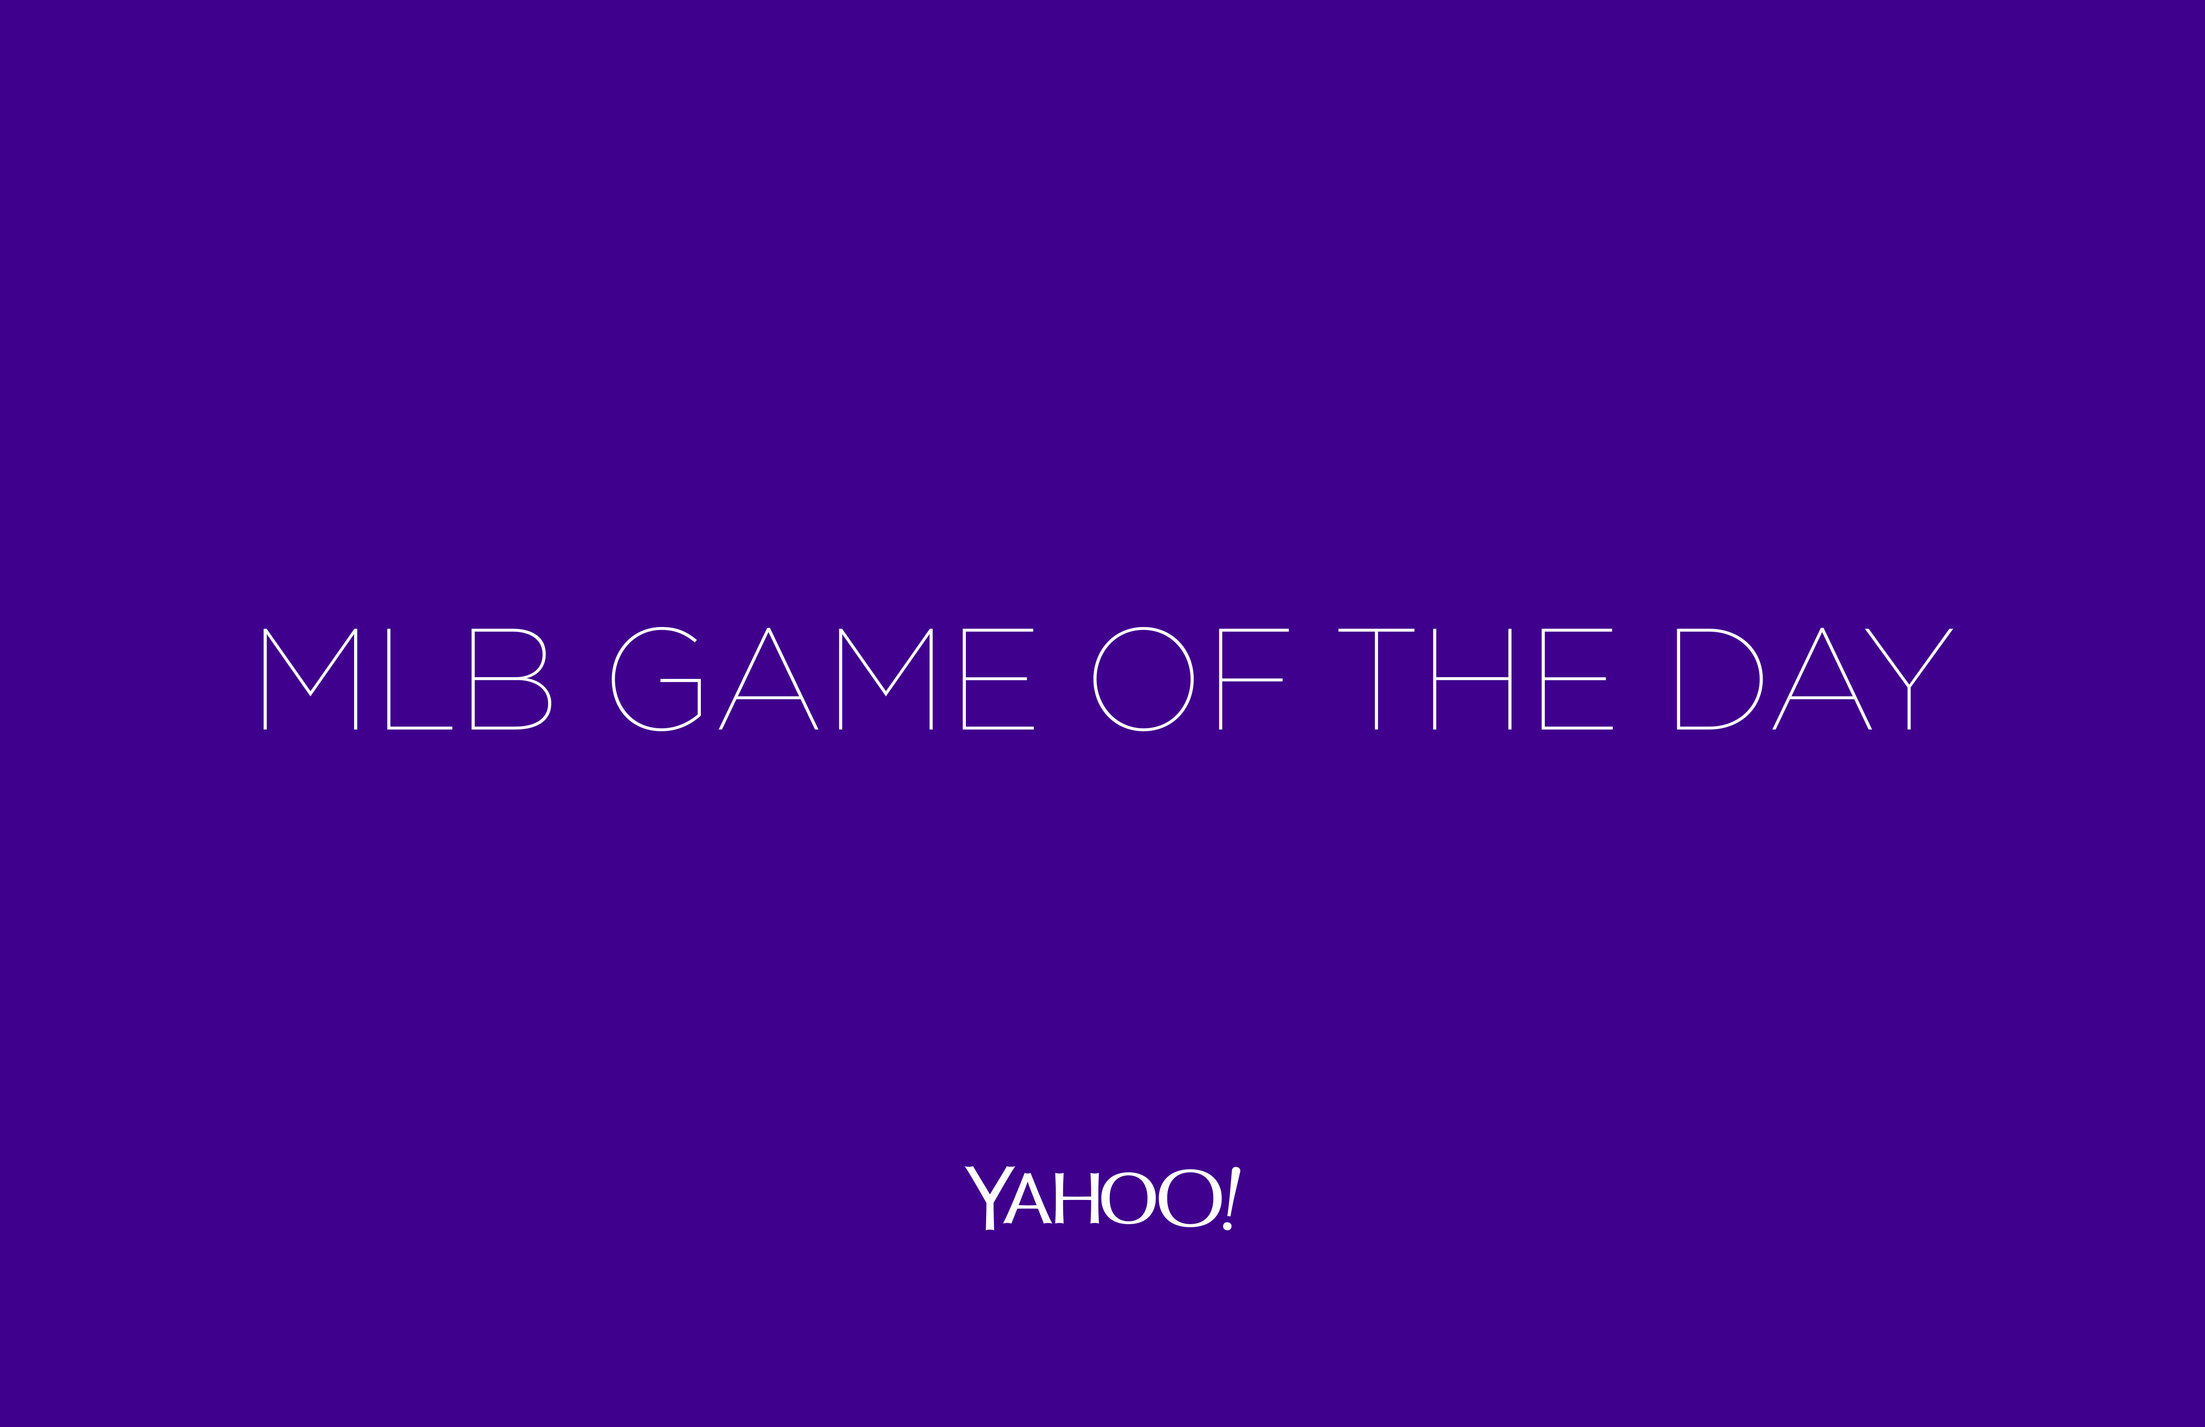 Yahoo! MLB Game of the Day Campaign